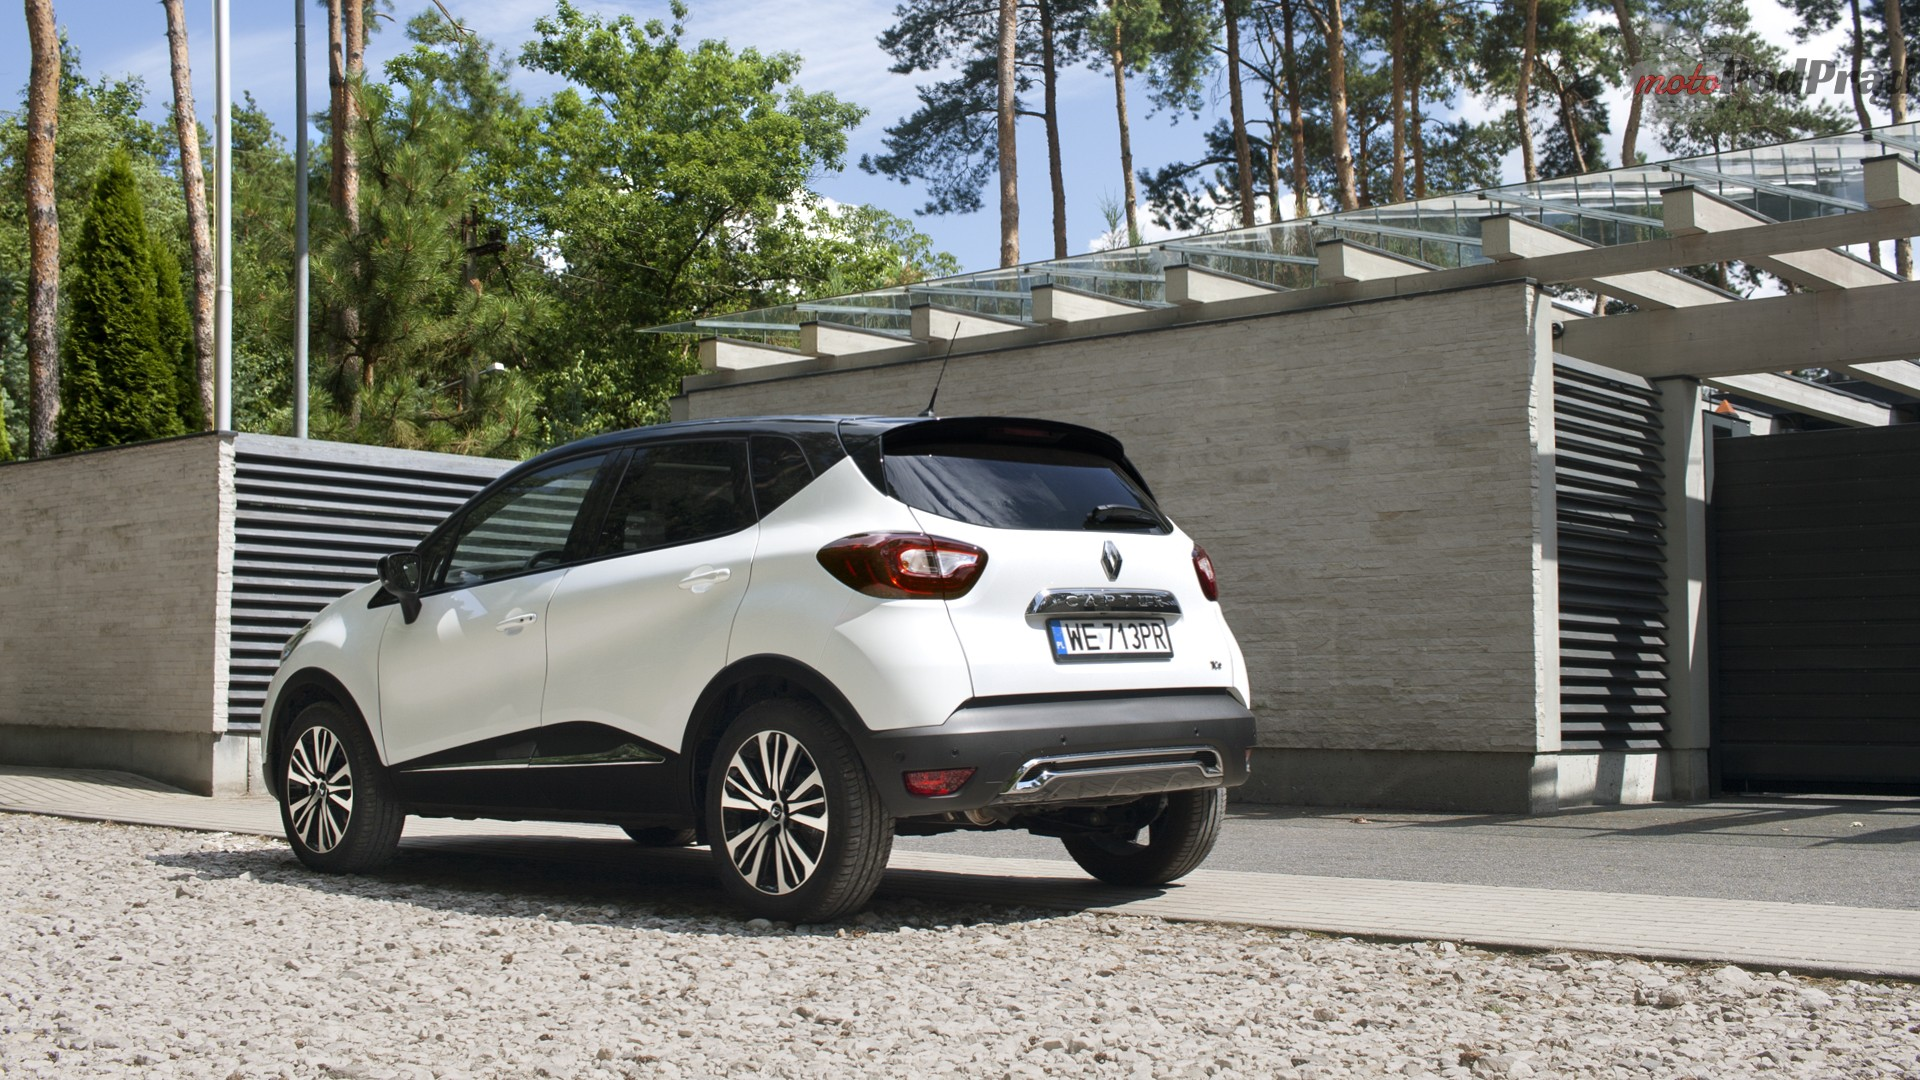 22 Test: Renault Captur Initiale Paris 1.2 Tce   diament w koronie?